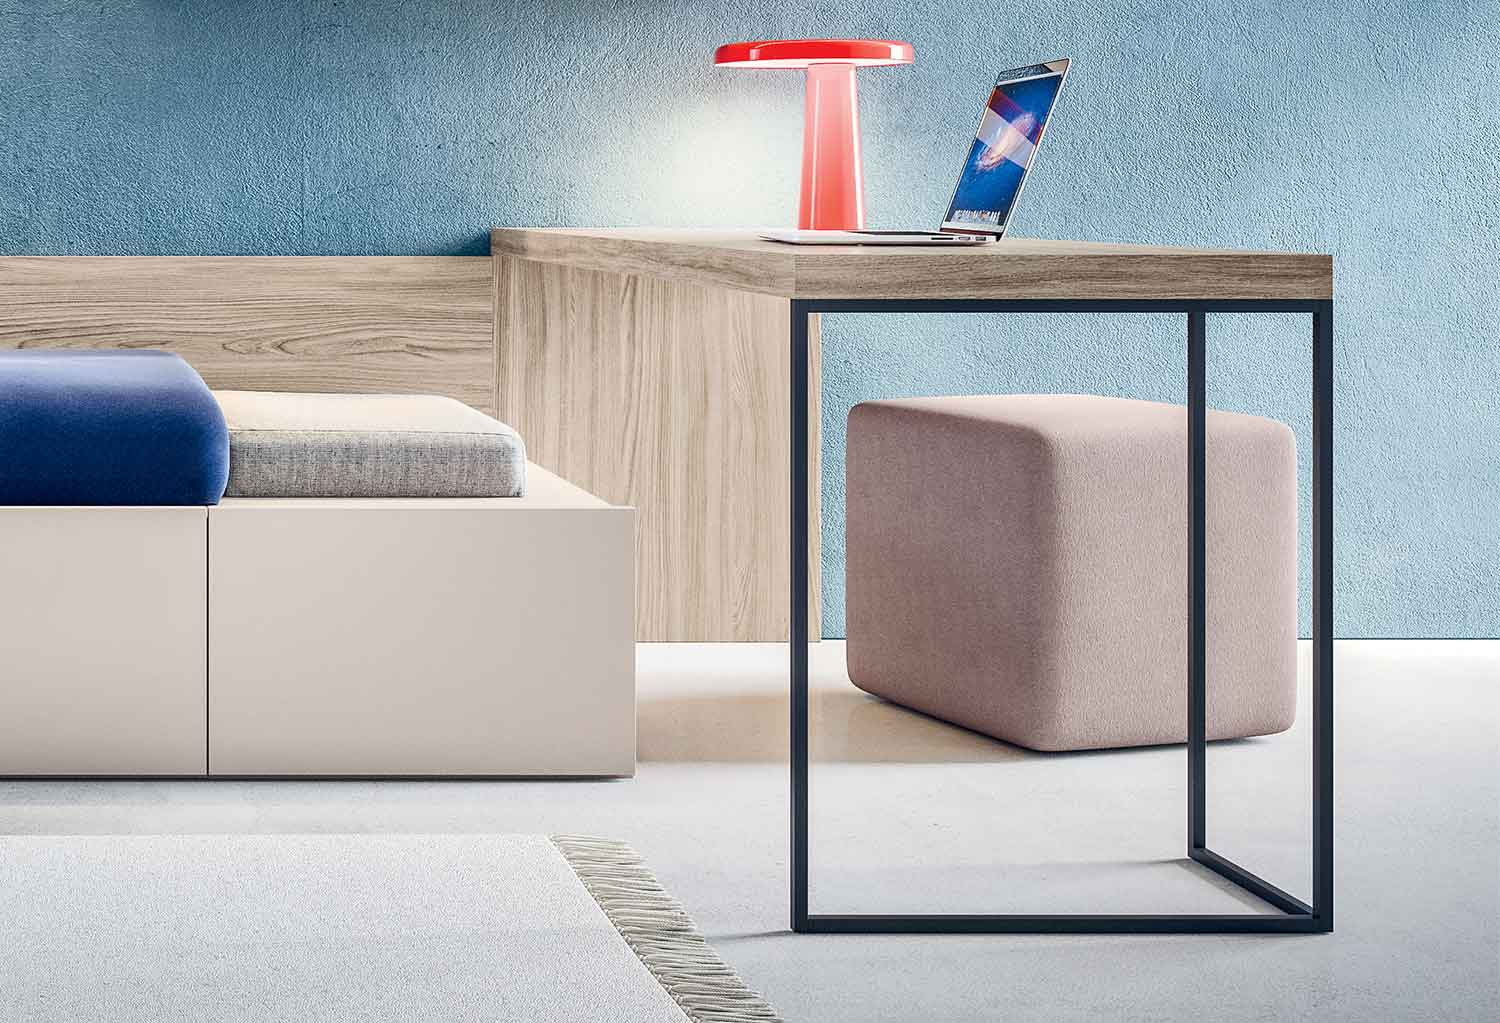 The Kios desk is here integrated with a wall panel and single bed